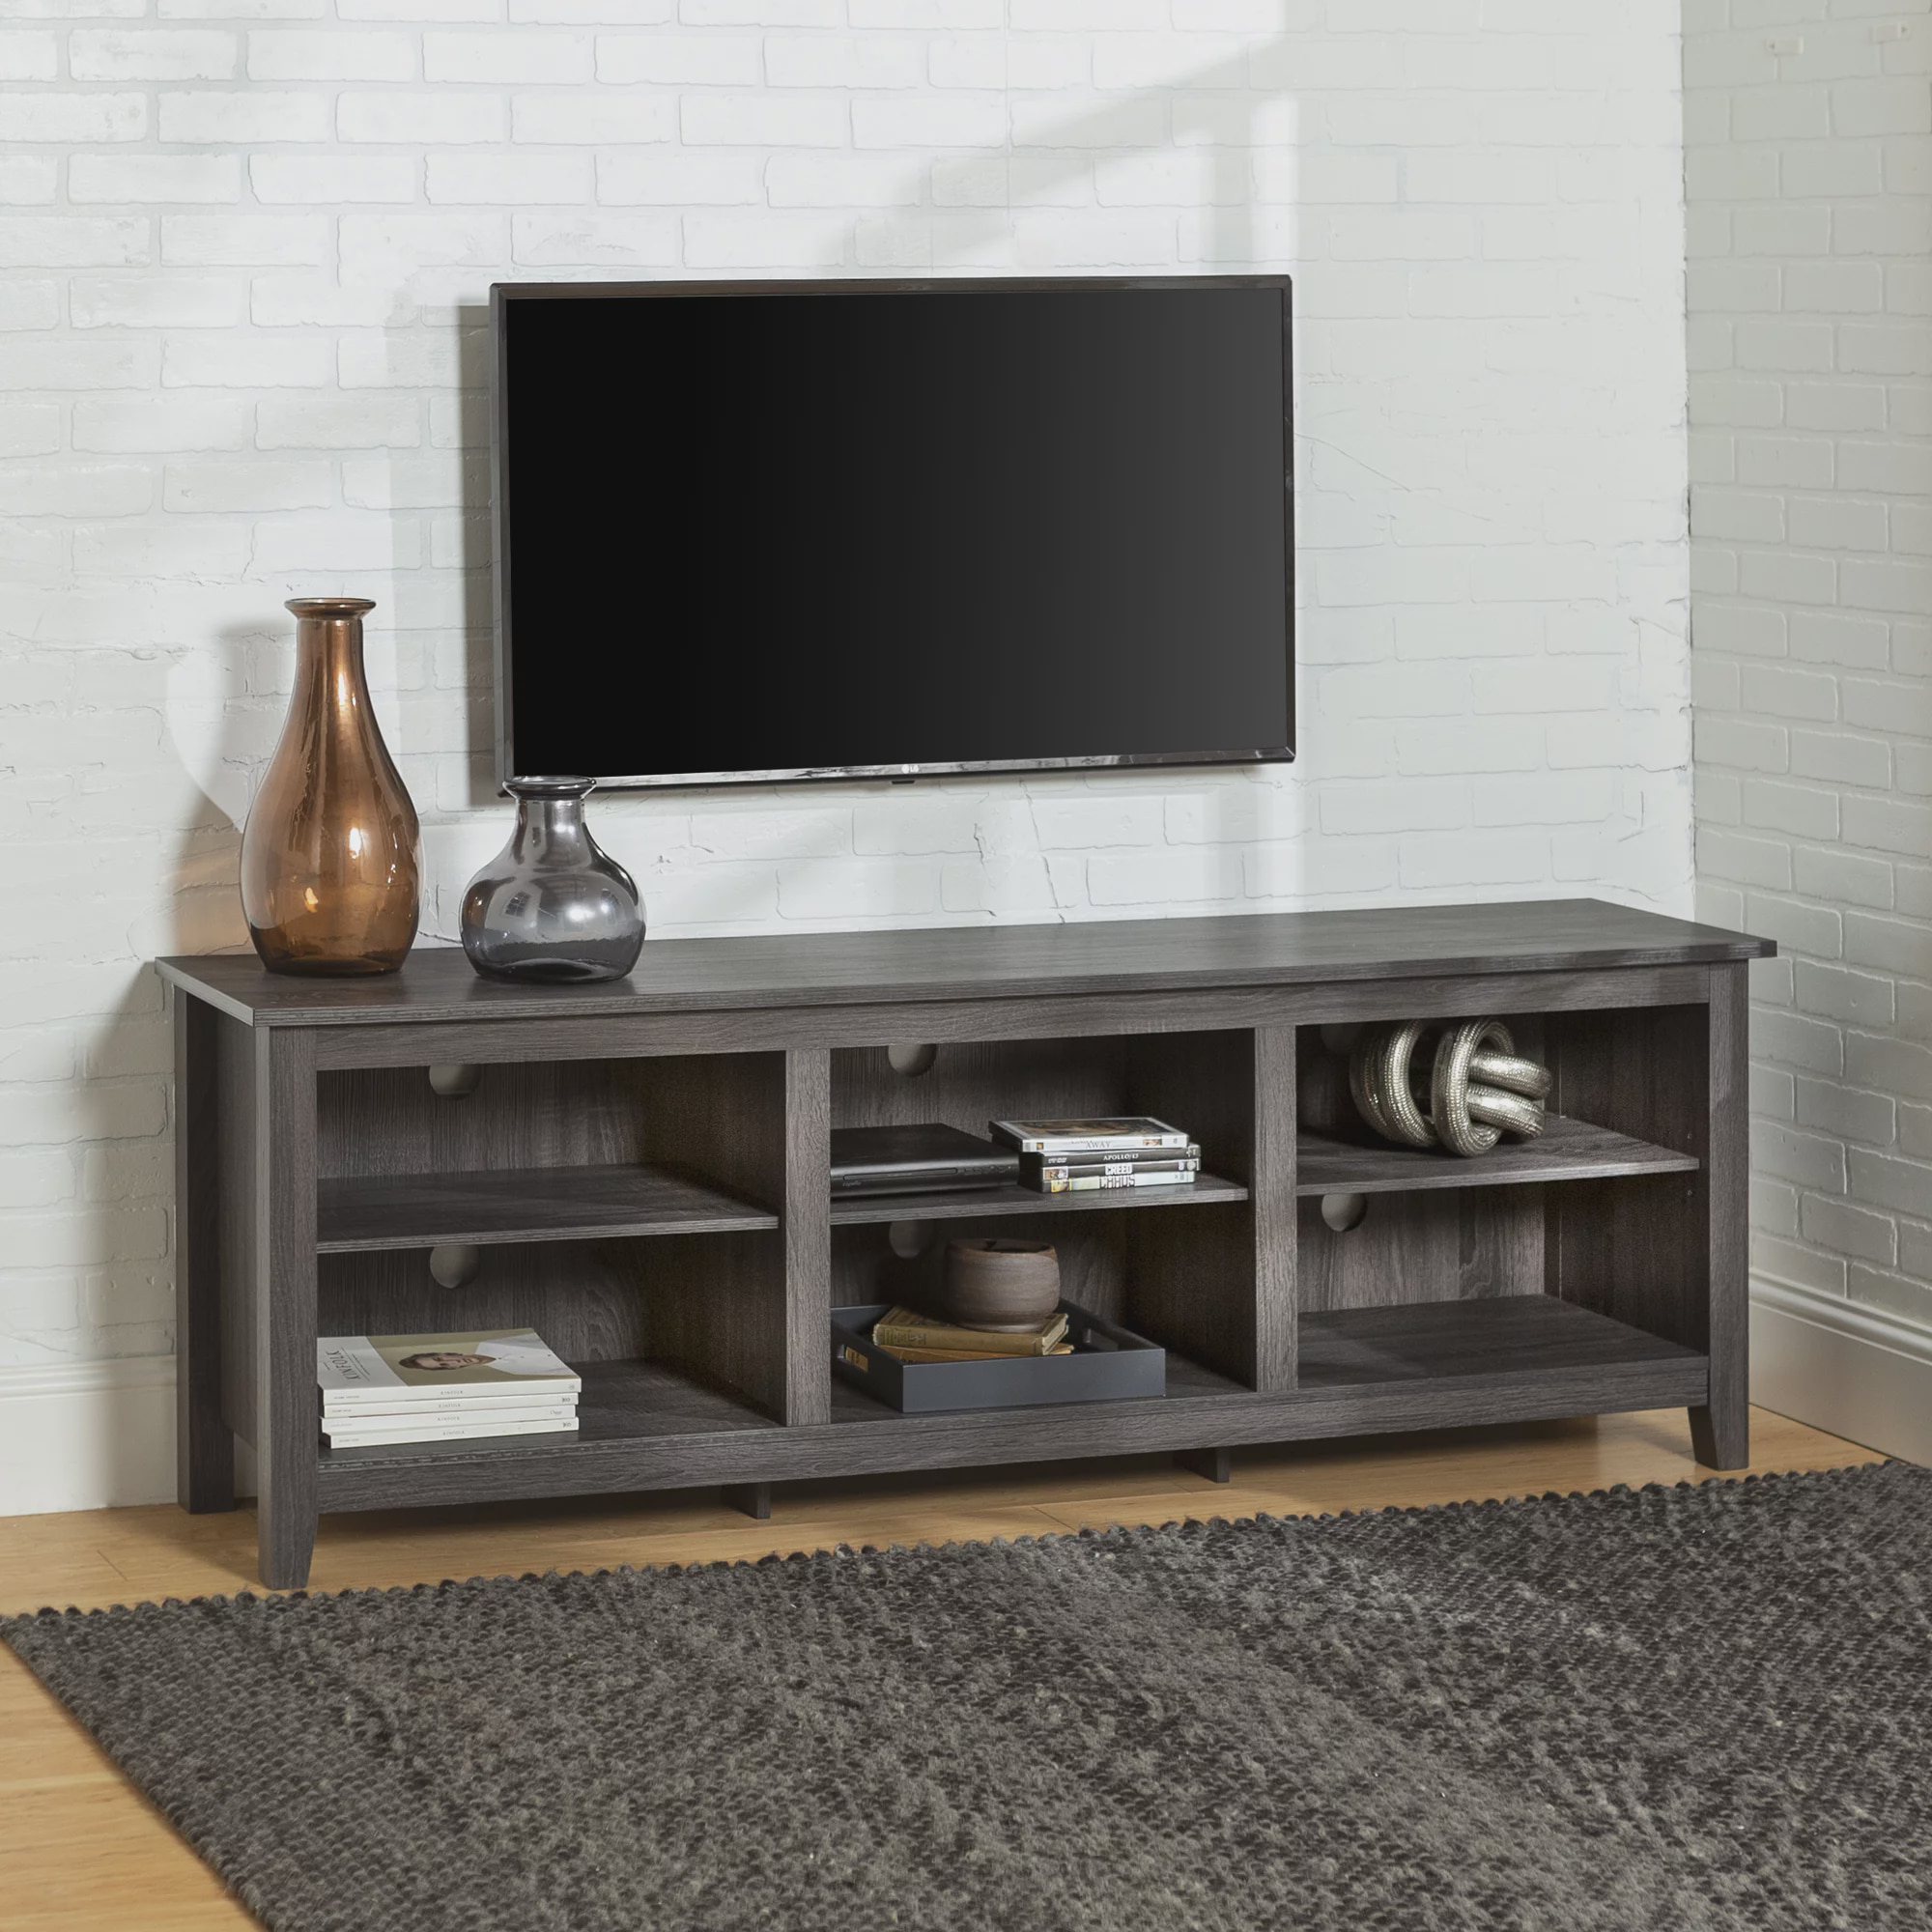 "Manor Park Wood TV Media Storage Stand for TV's up to 78"" - Charcoal"